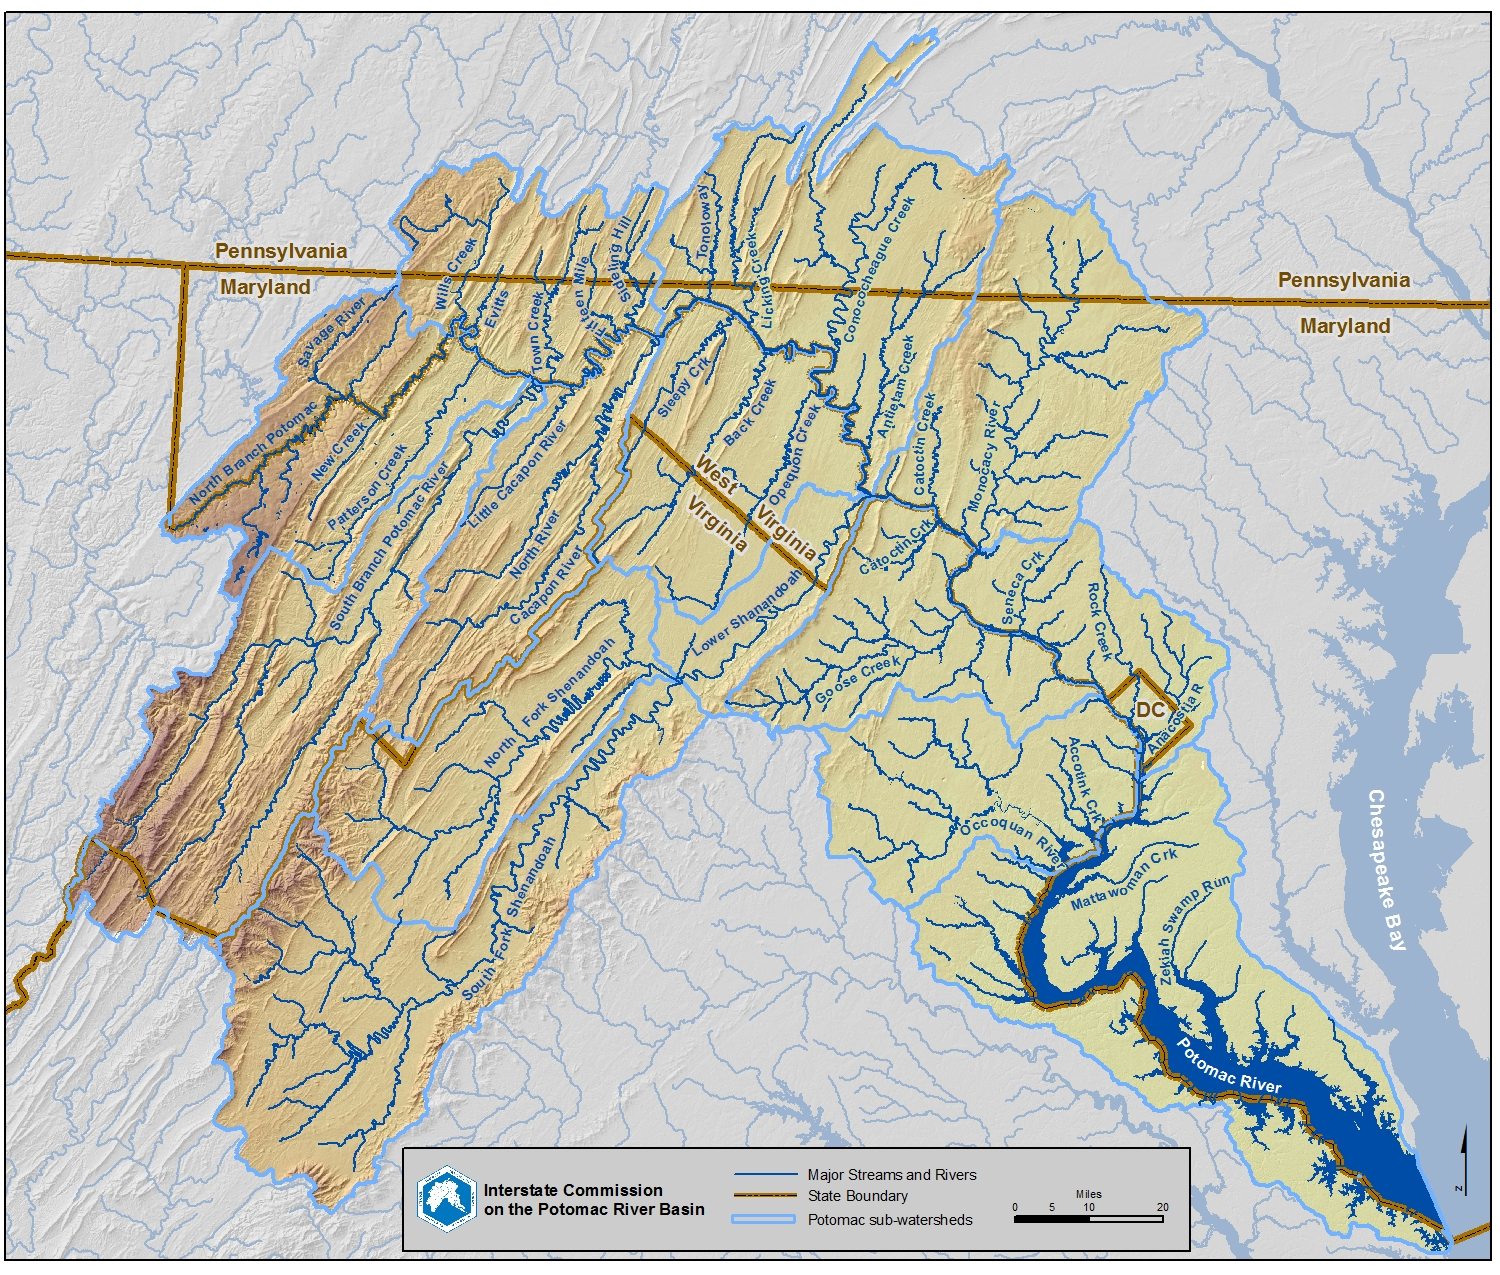 Lower Potomac River Maps to Download: DC to Opequon Creek